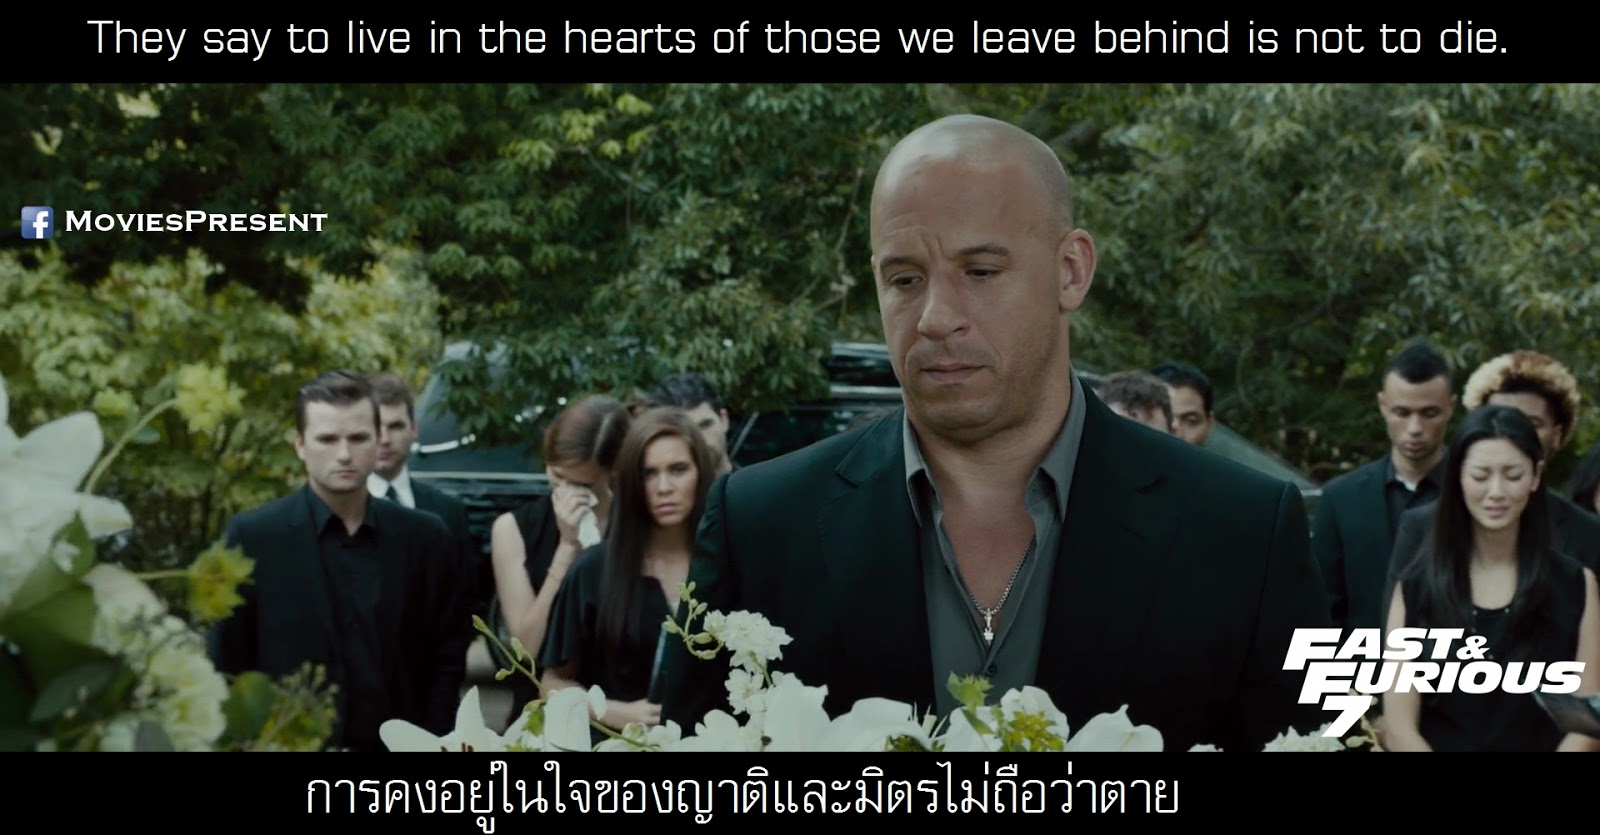 moviesquotes by moviespresent fast and furious 7 ������ ����